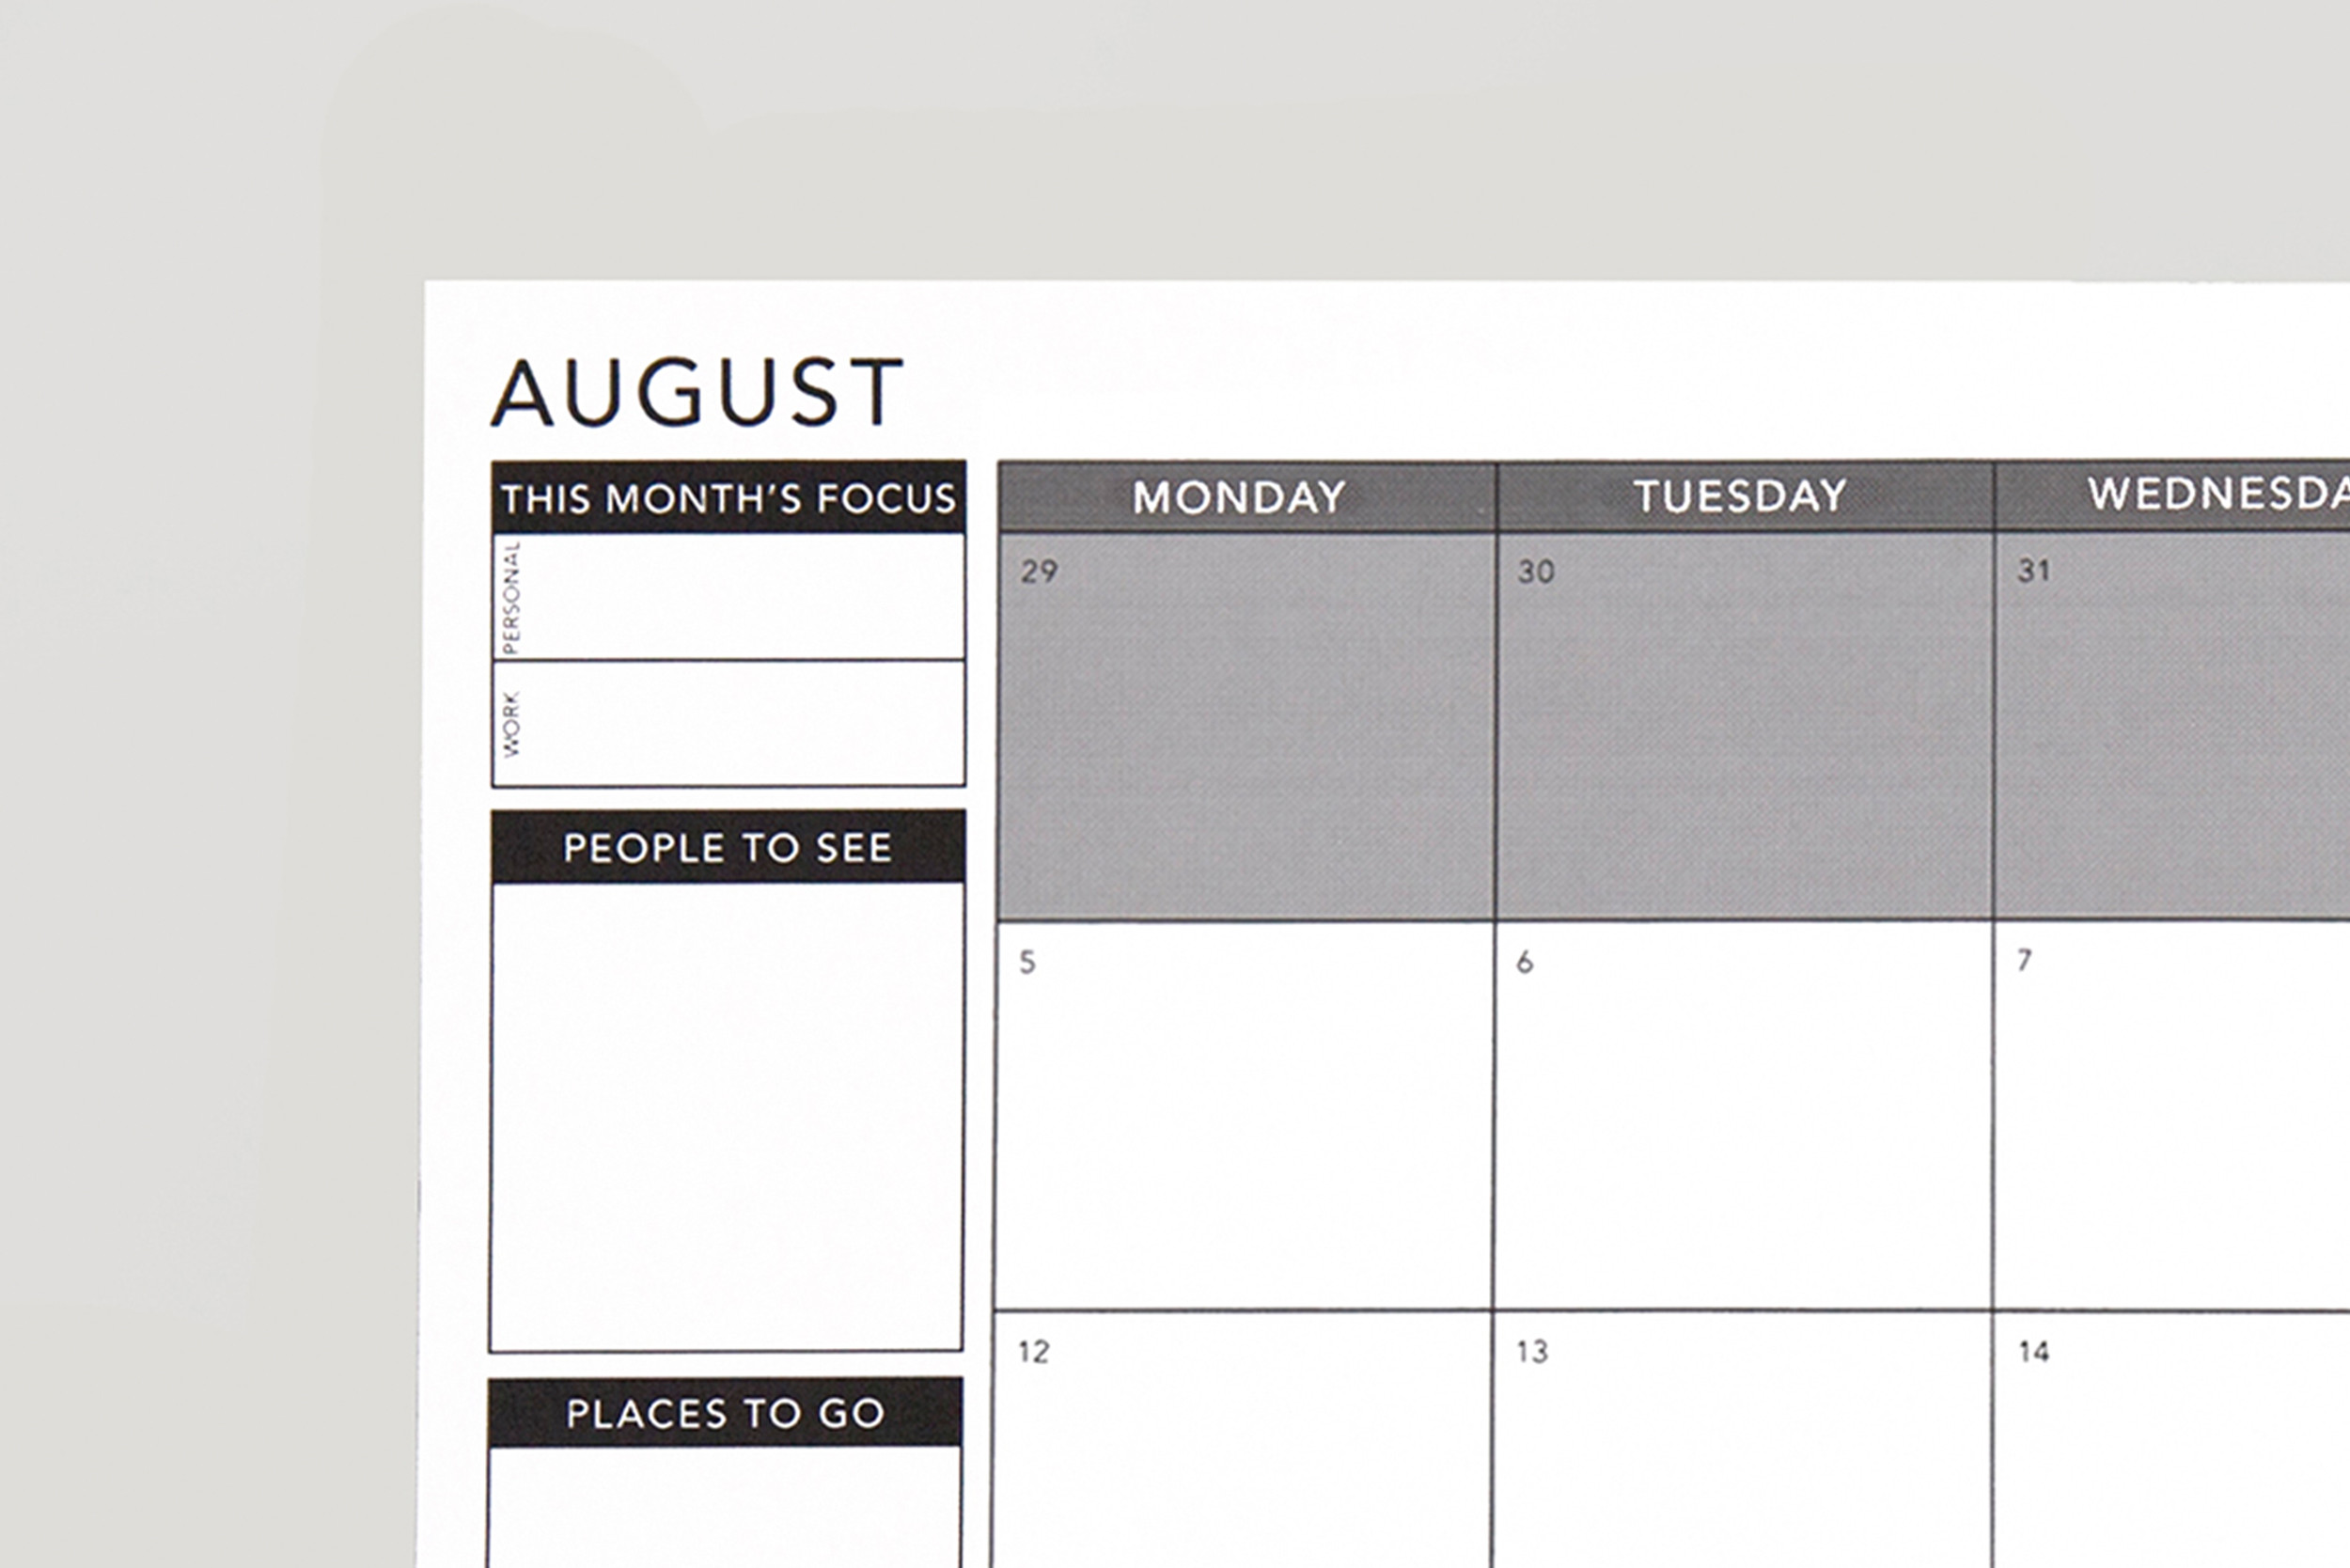 image about Full Focus Planner Pdf named Down load Absolutely free Planners Extras Pion Planner